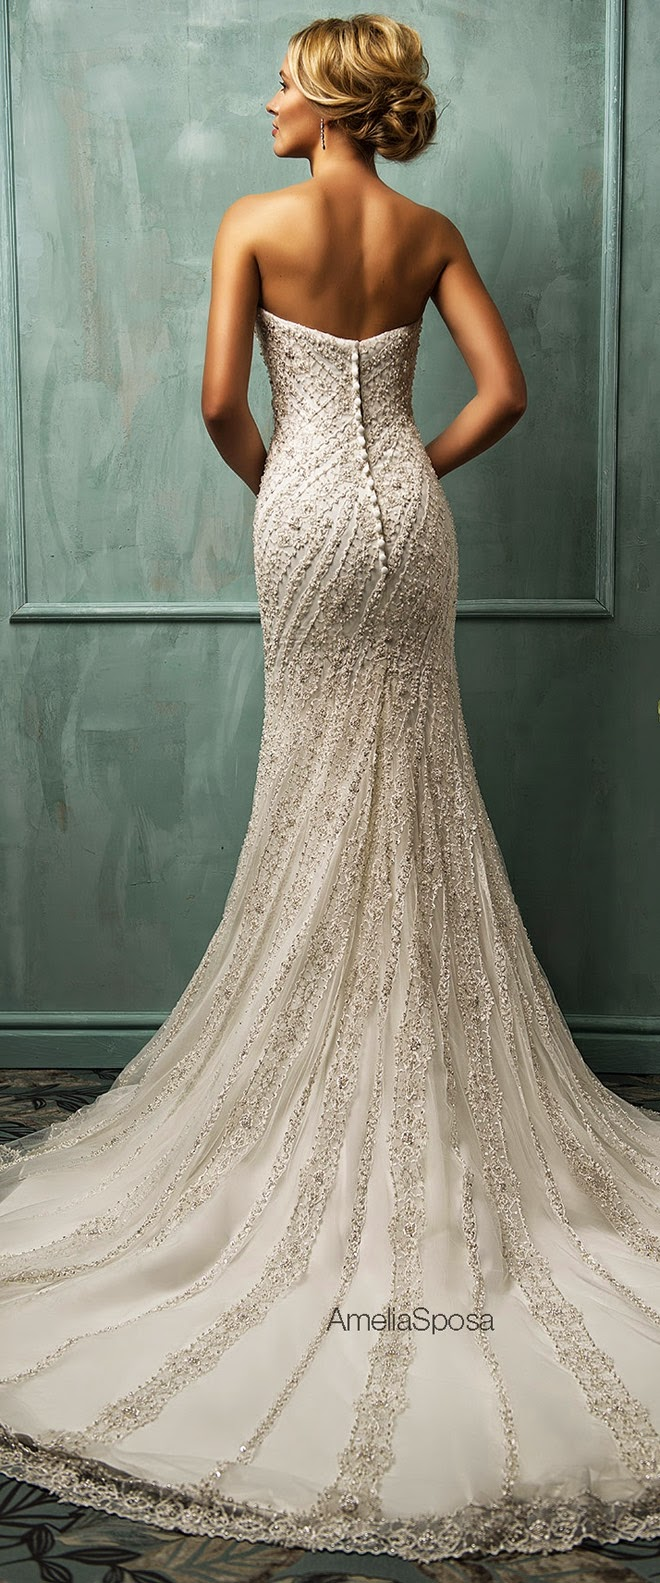 Beautiful Gowns For Wedding 56 Cute Best Wedding Dresses of